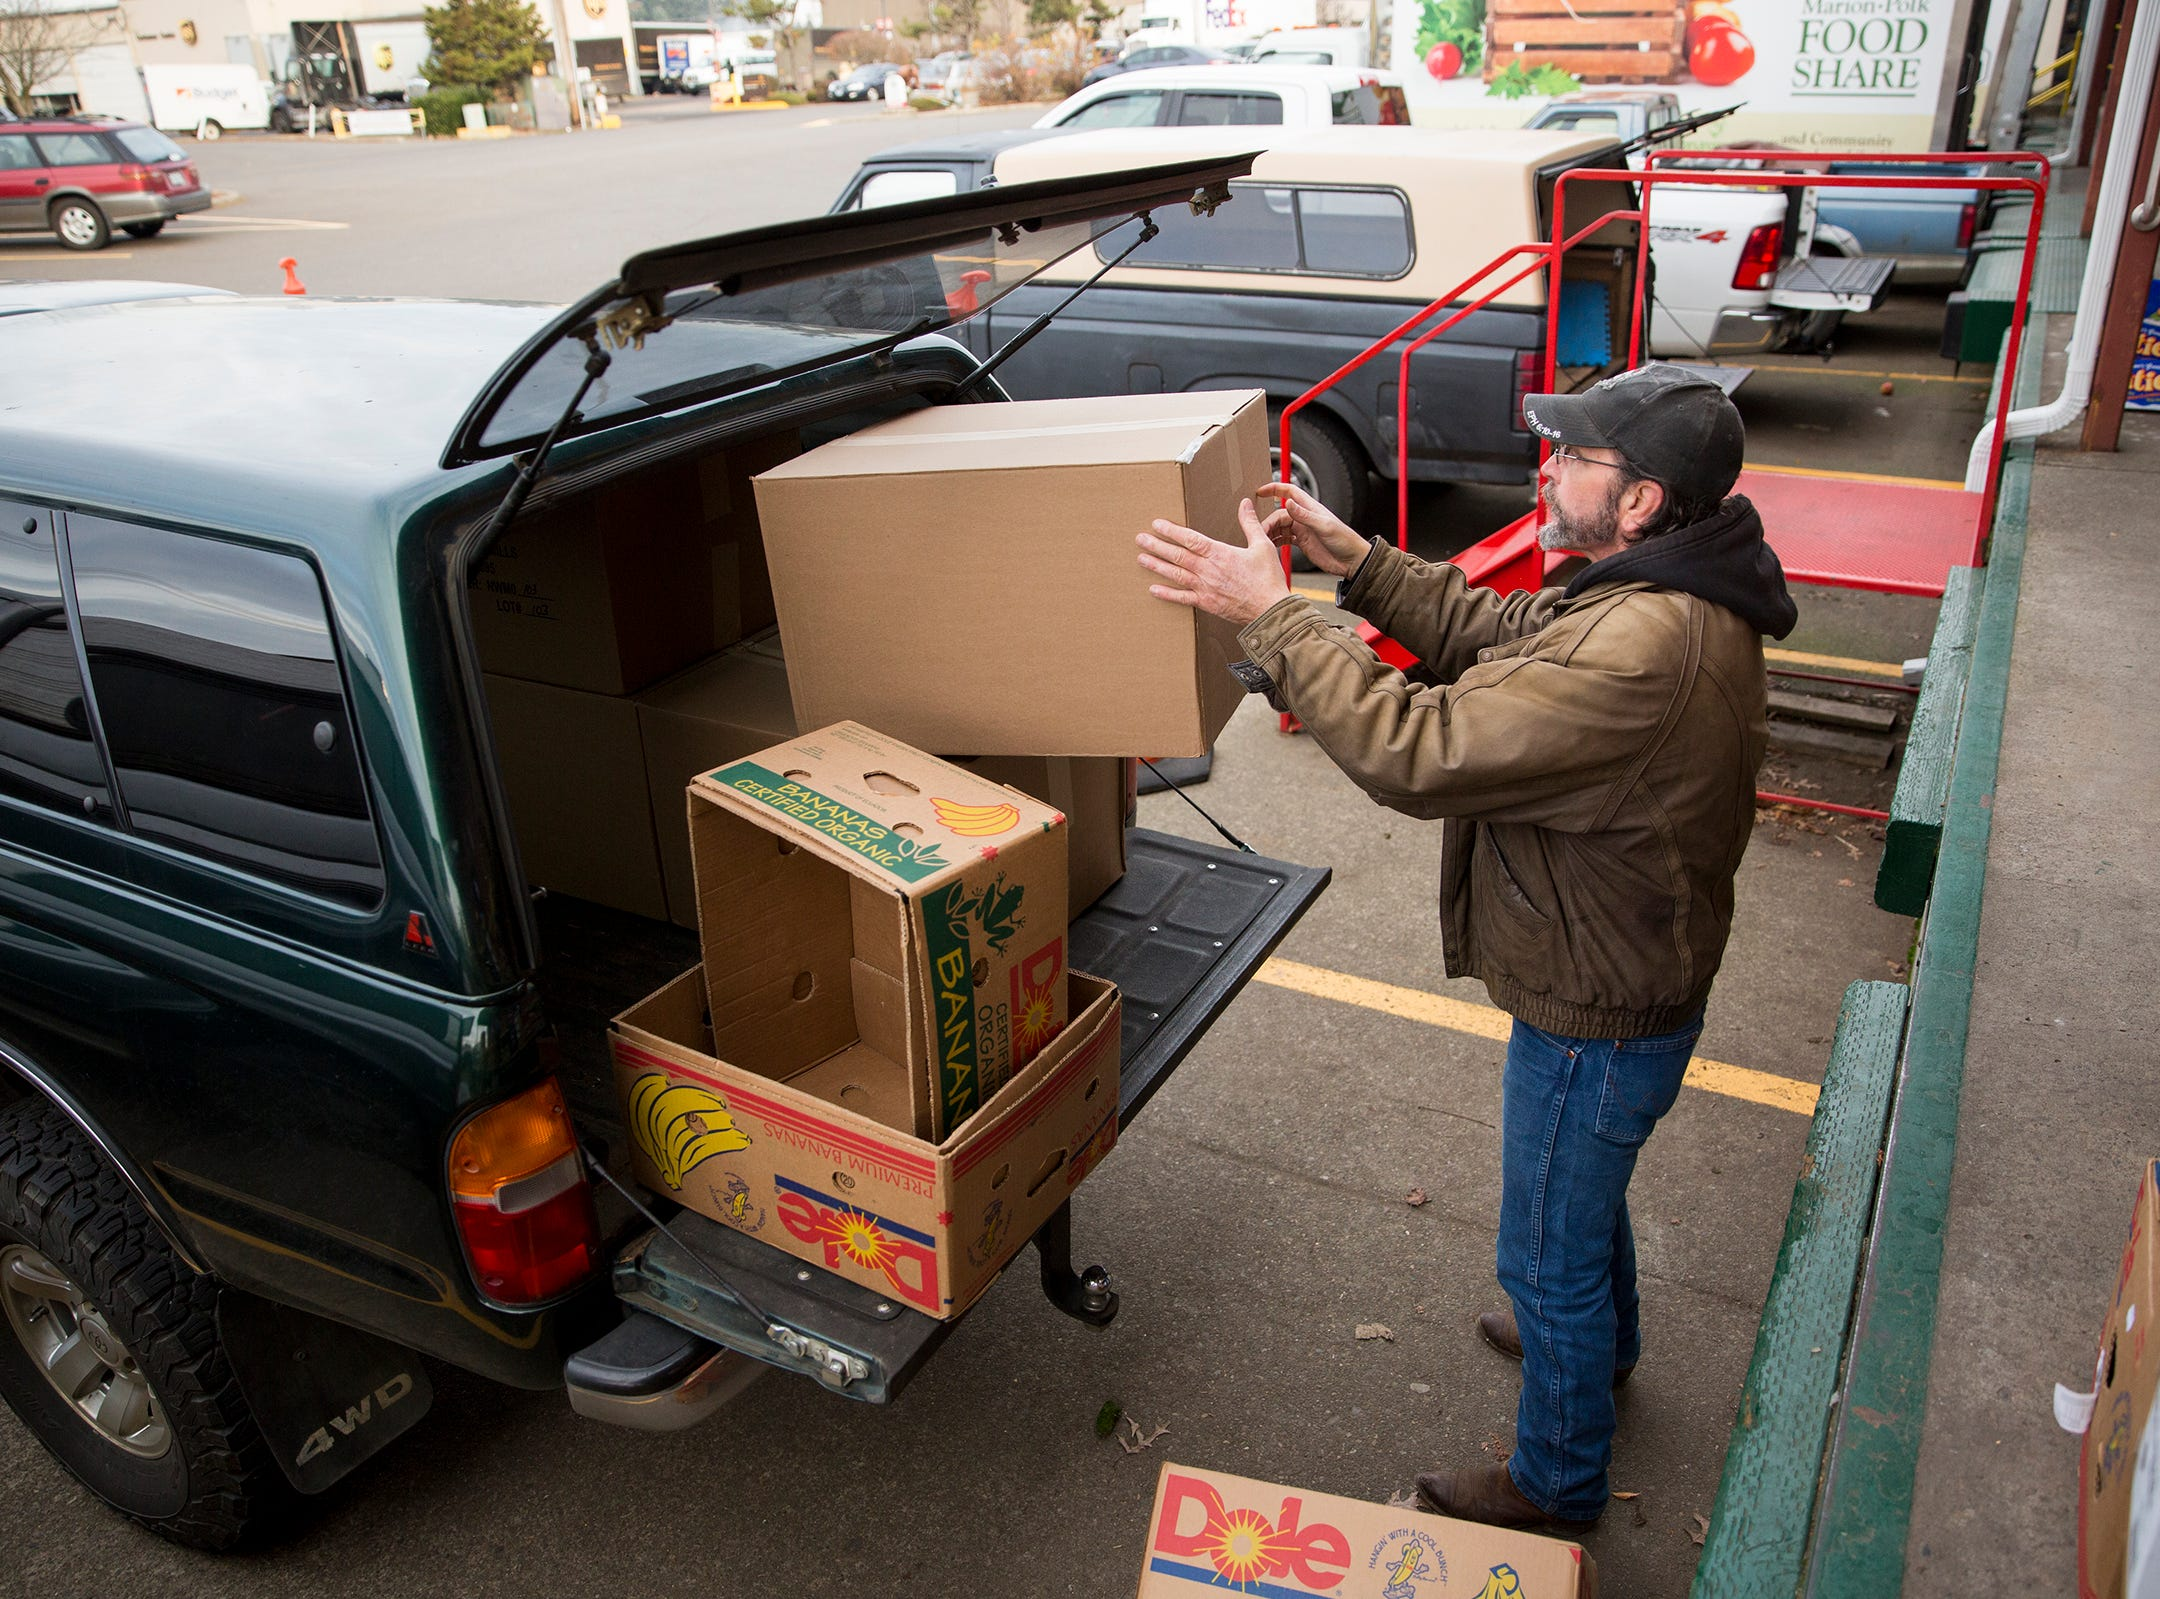 Art Scaglione loads boxes of food into his vehicle at the Marion-Polk Food Share in Salem on Friday, Dec. 7, 2018. He collects the food for homeless people living in Wallace Marine Park.